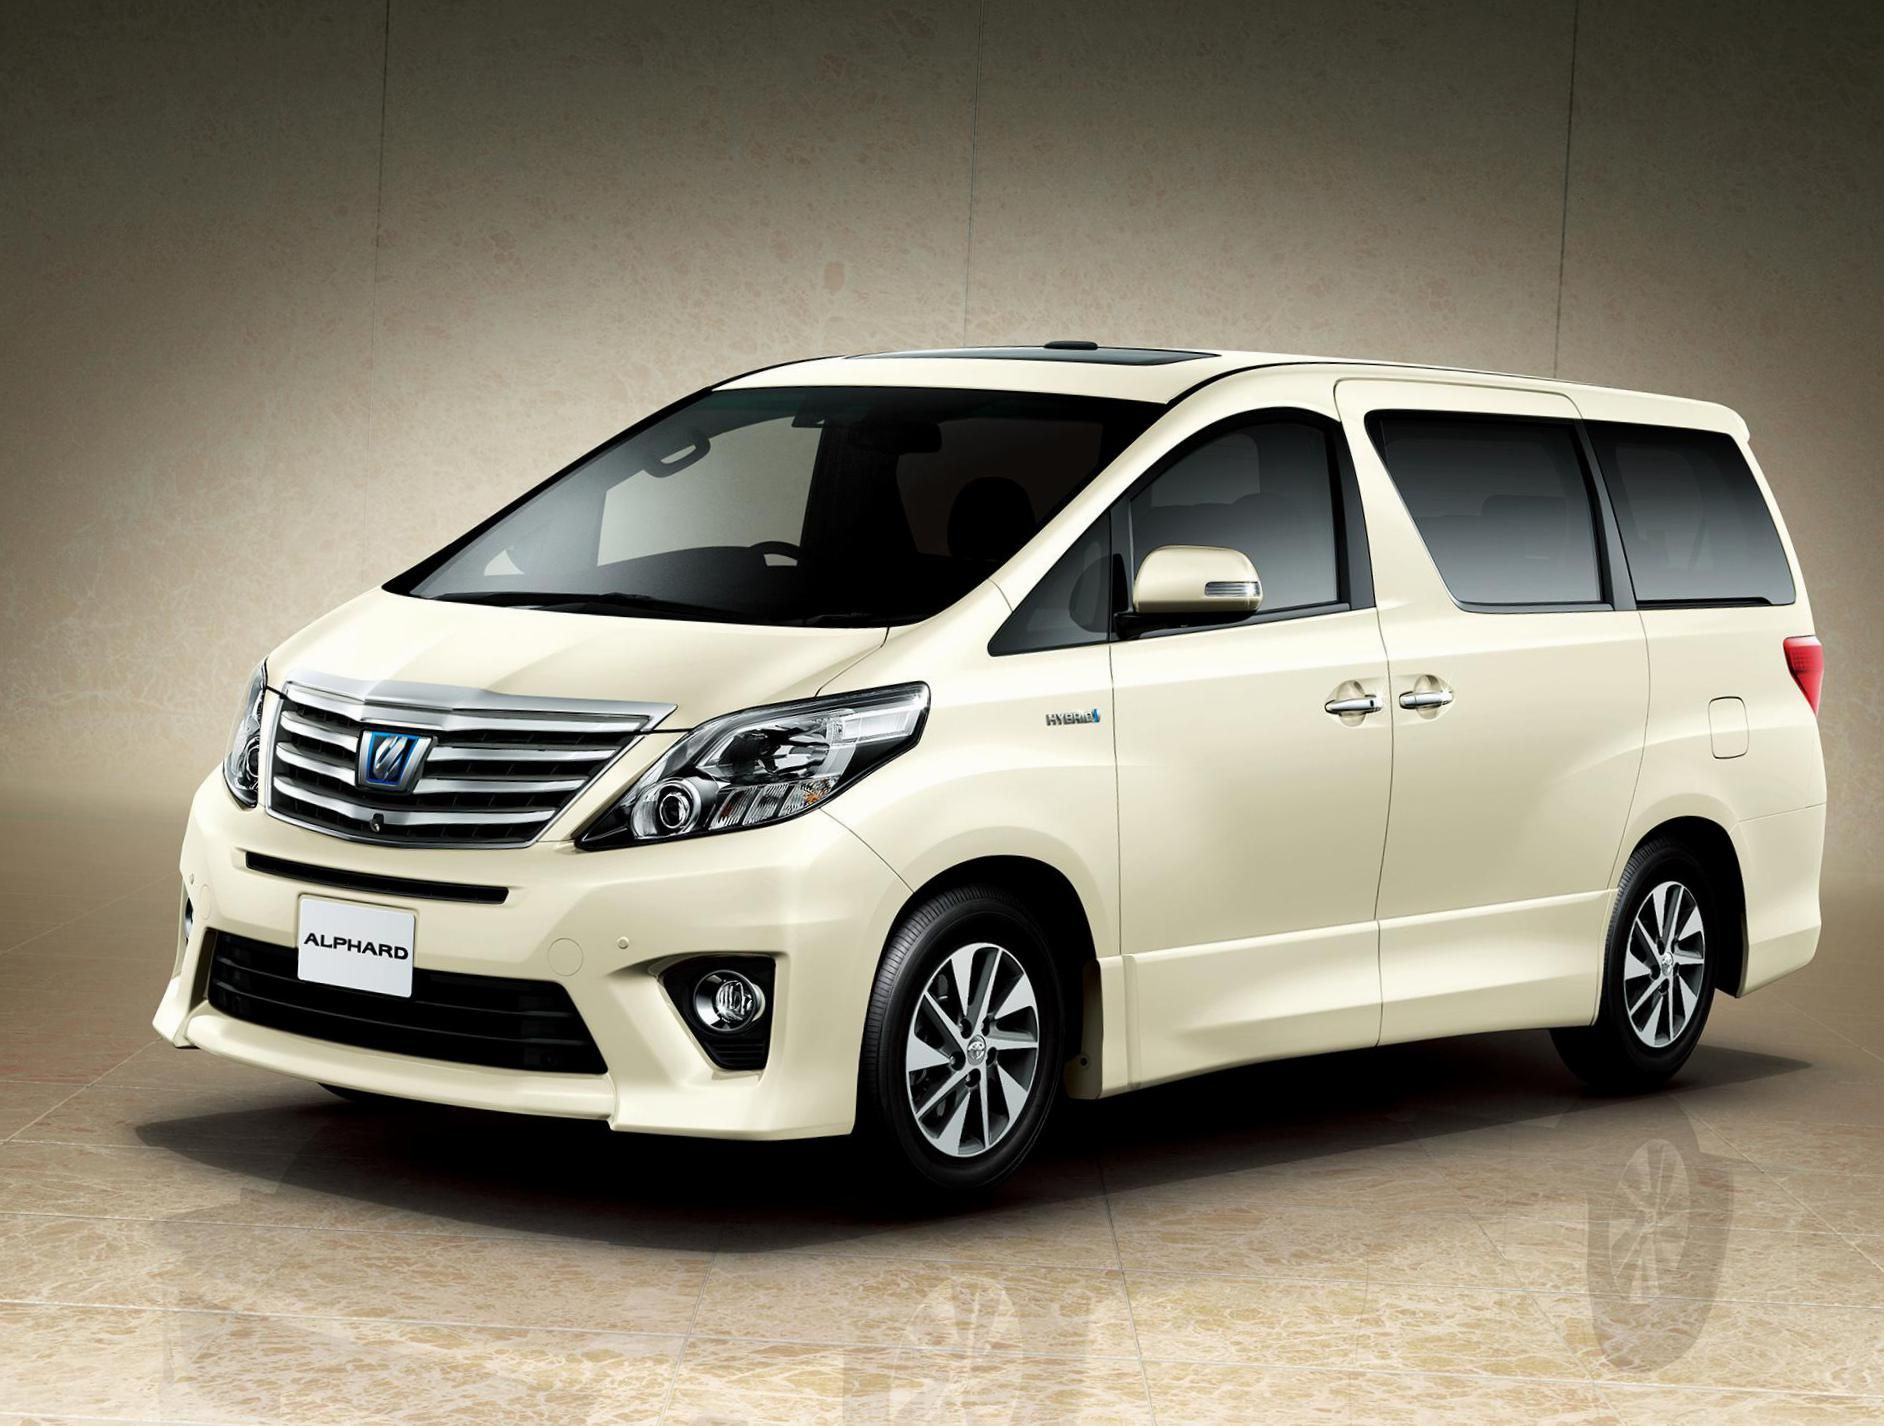 Toyota alphard photos and specs photo toyota alphard configuration and 23 perfect photos of toyota alphard